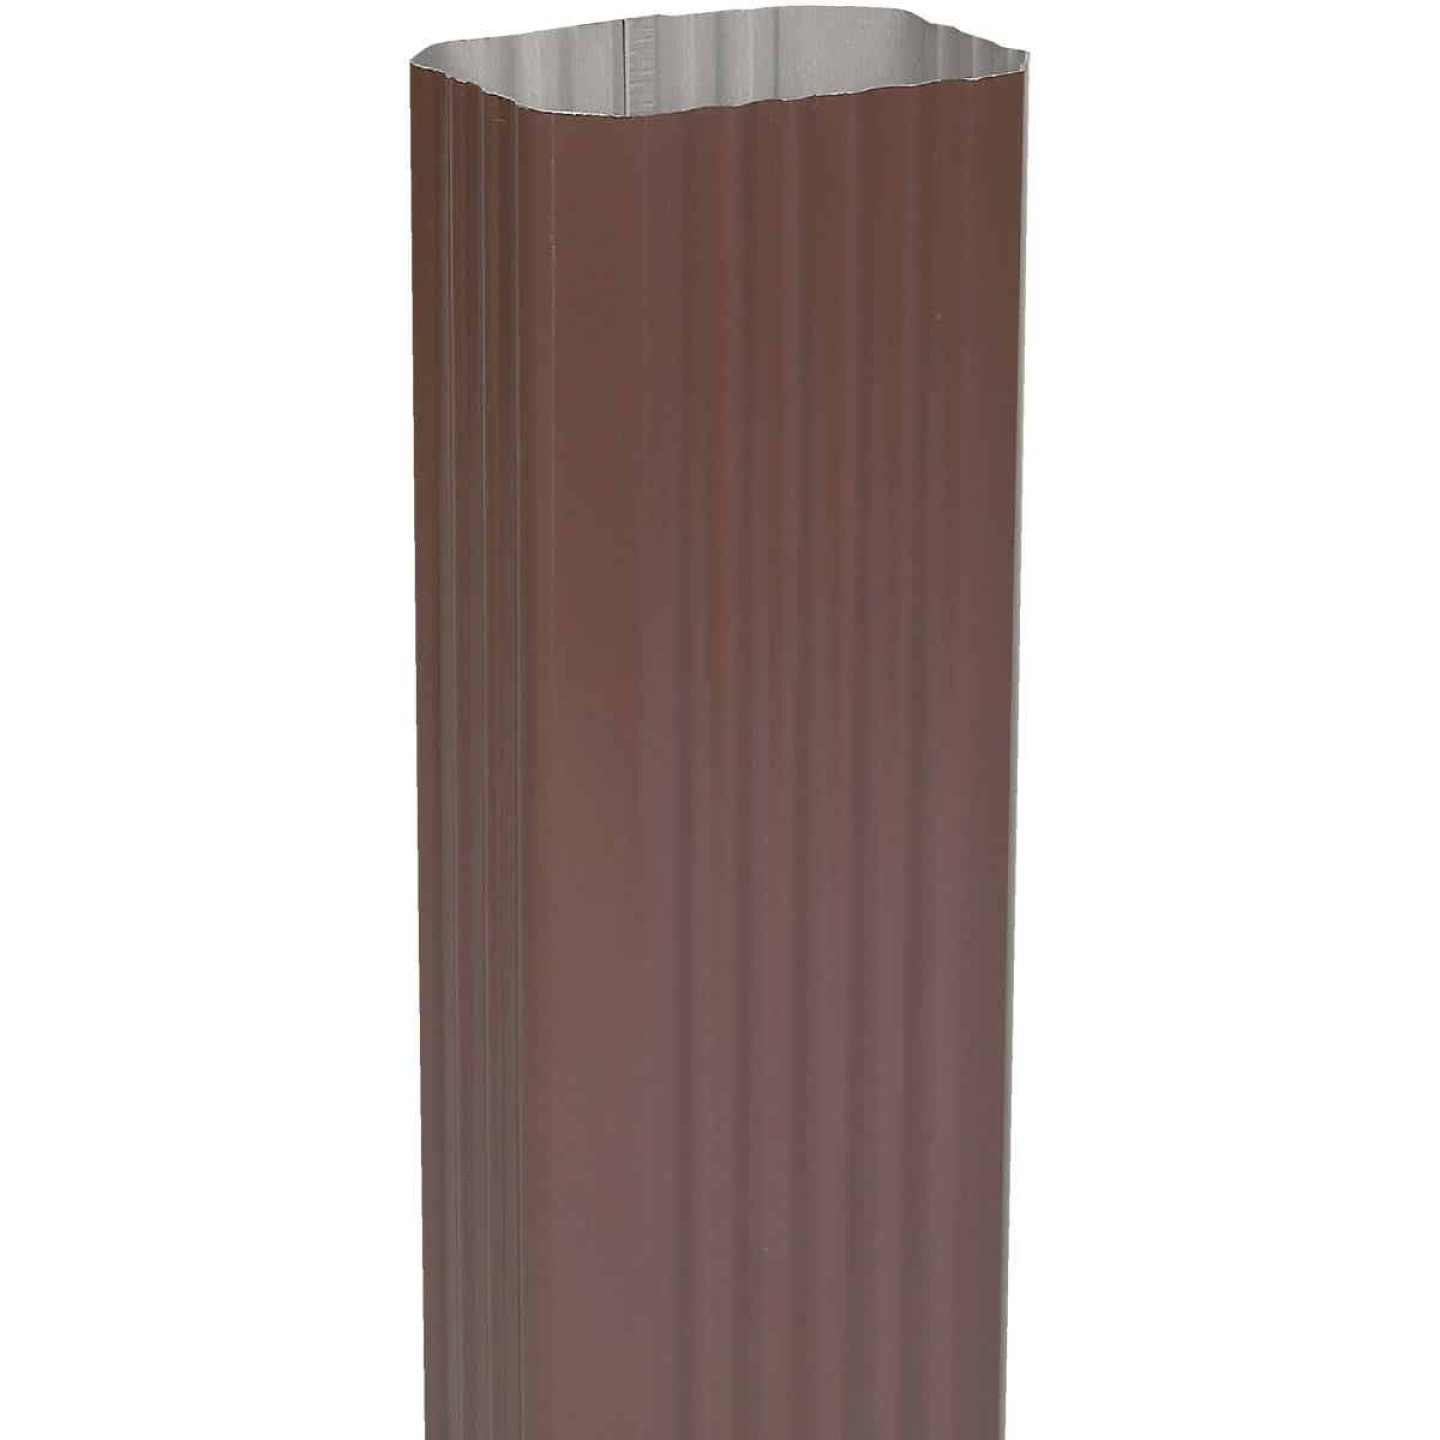 Amerimax 2 In. x 3 In. Brown Aluminum Downspout Image 1